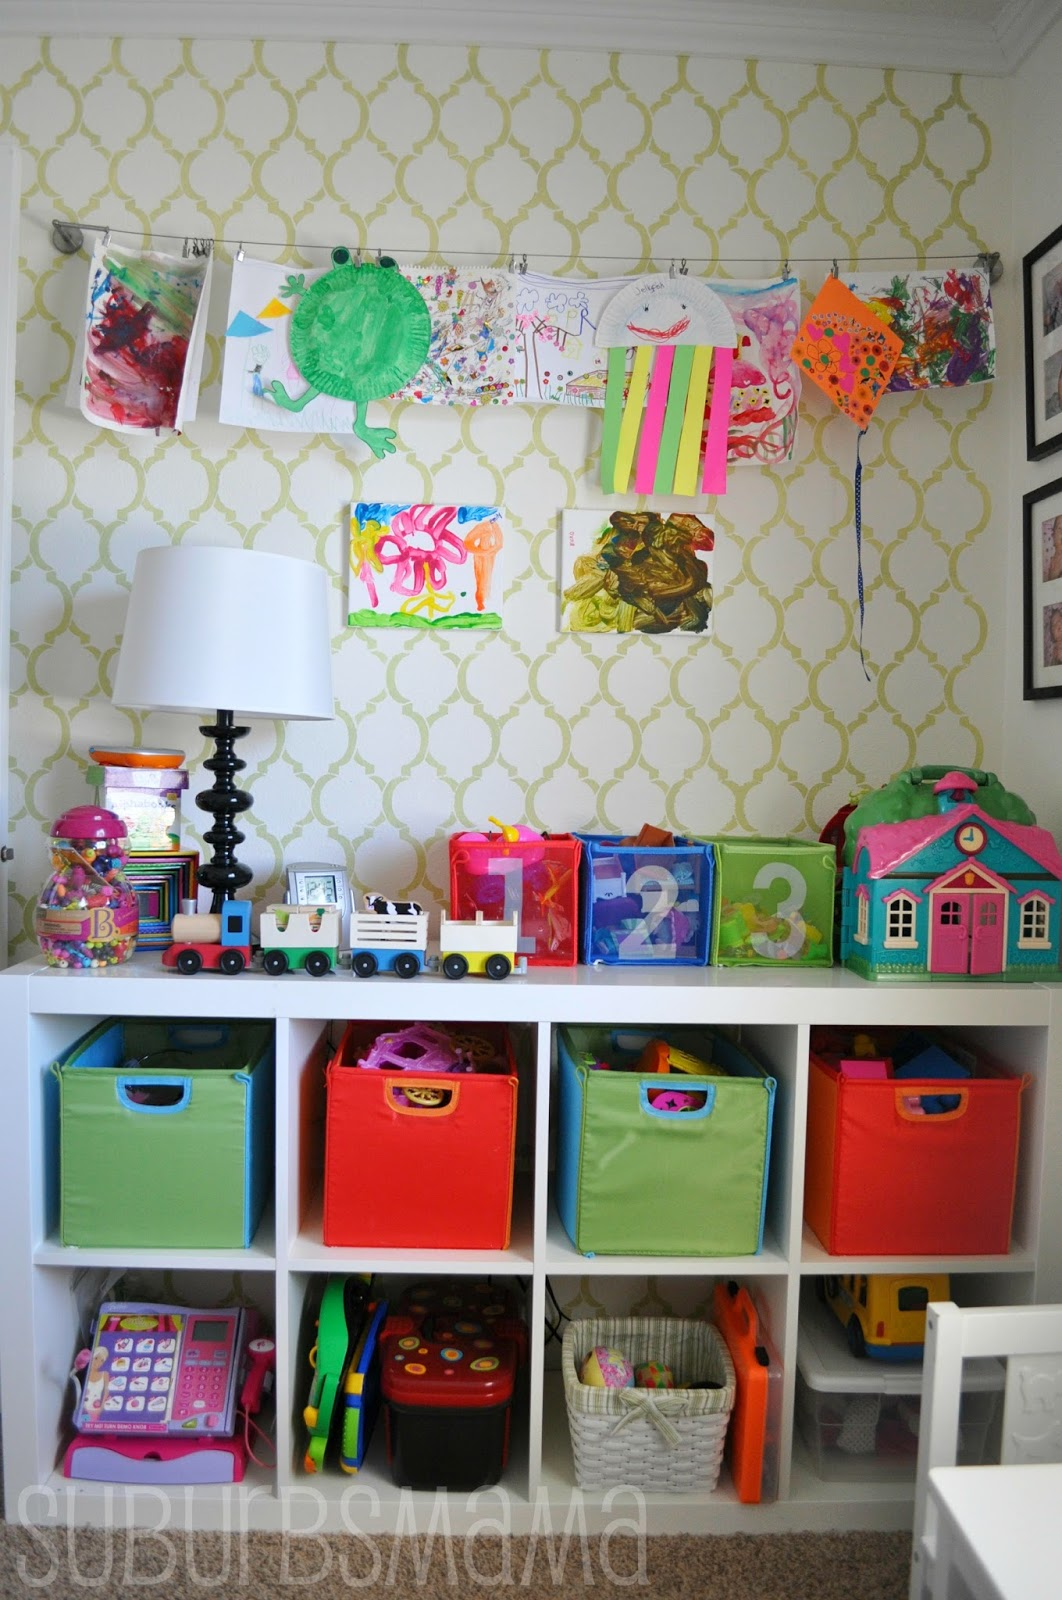 10 Types Of Toy Organizers For Kids Bedrooms And Playrooms: Suburbs Mama: Play Room/Guest Room